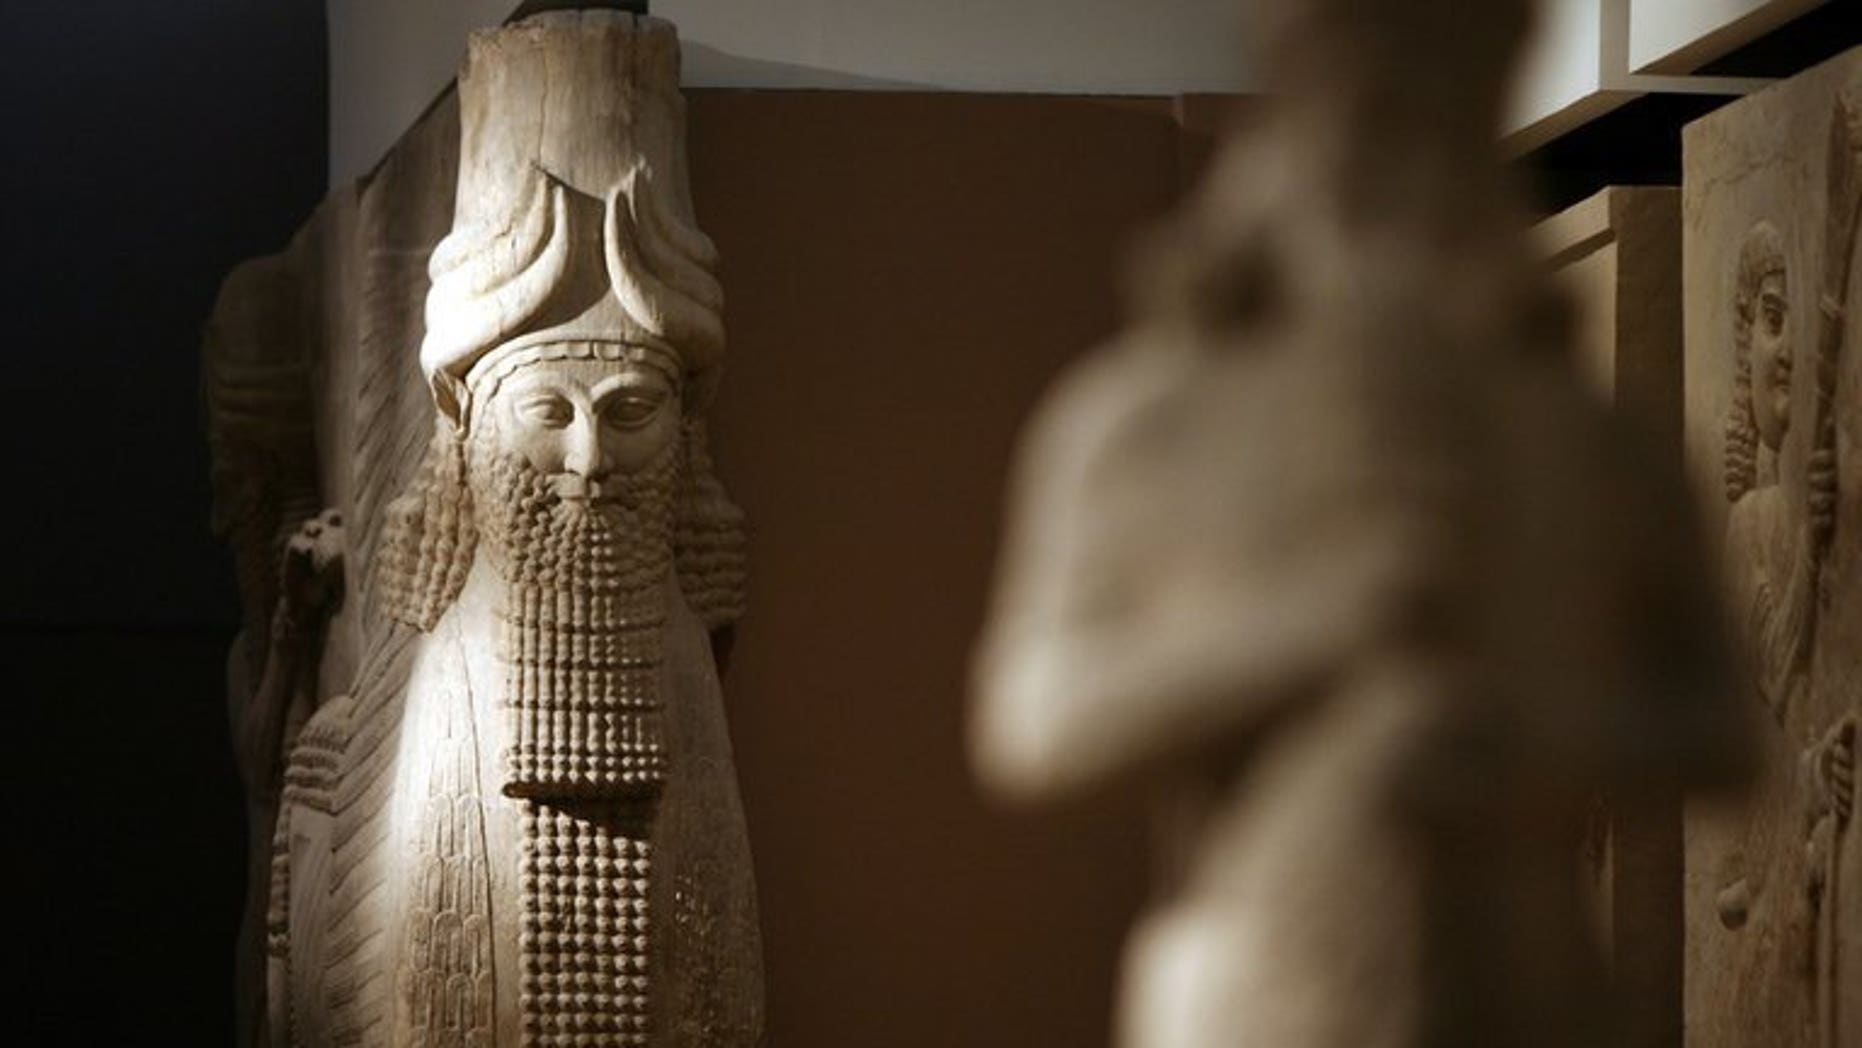 A statue is lit by natural light inside the Assyrian Hall of the Iraqi National Museum on September 21, 2010. Some 15,000 artefacts were stolen from the national museum in Baghdad by looters in the chaos that followed the 2003 US-led invasion of Iraq. Baghdad reached an initial deal with the US on the return of more than 10,000 artefacts stolen from Iraq after the 2003 US-led invasion.